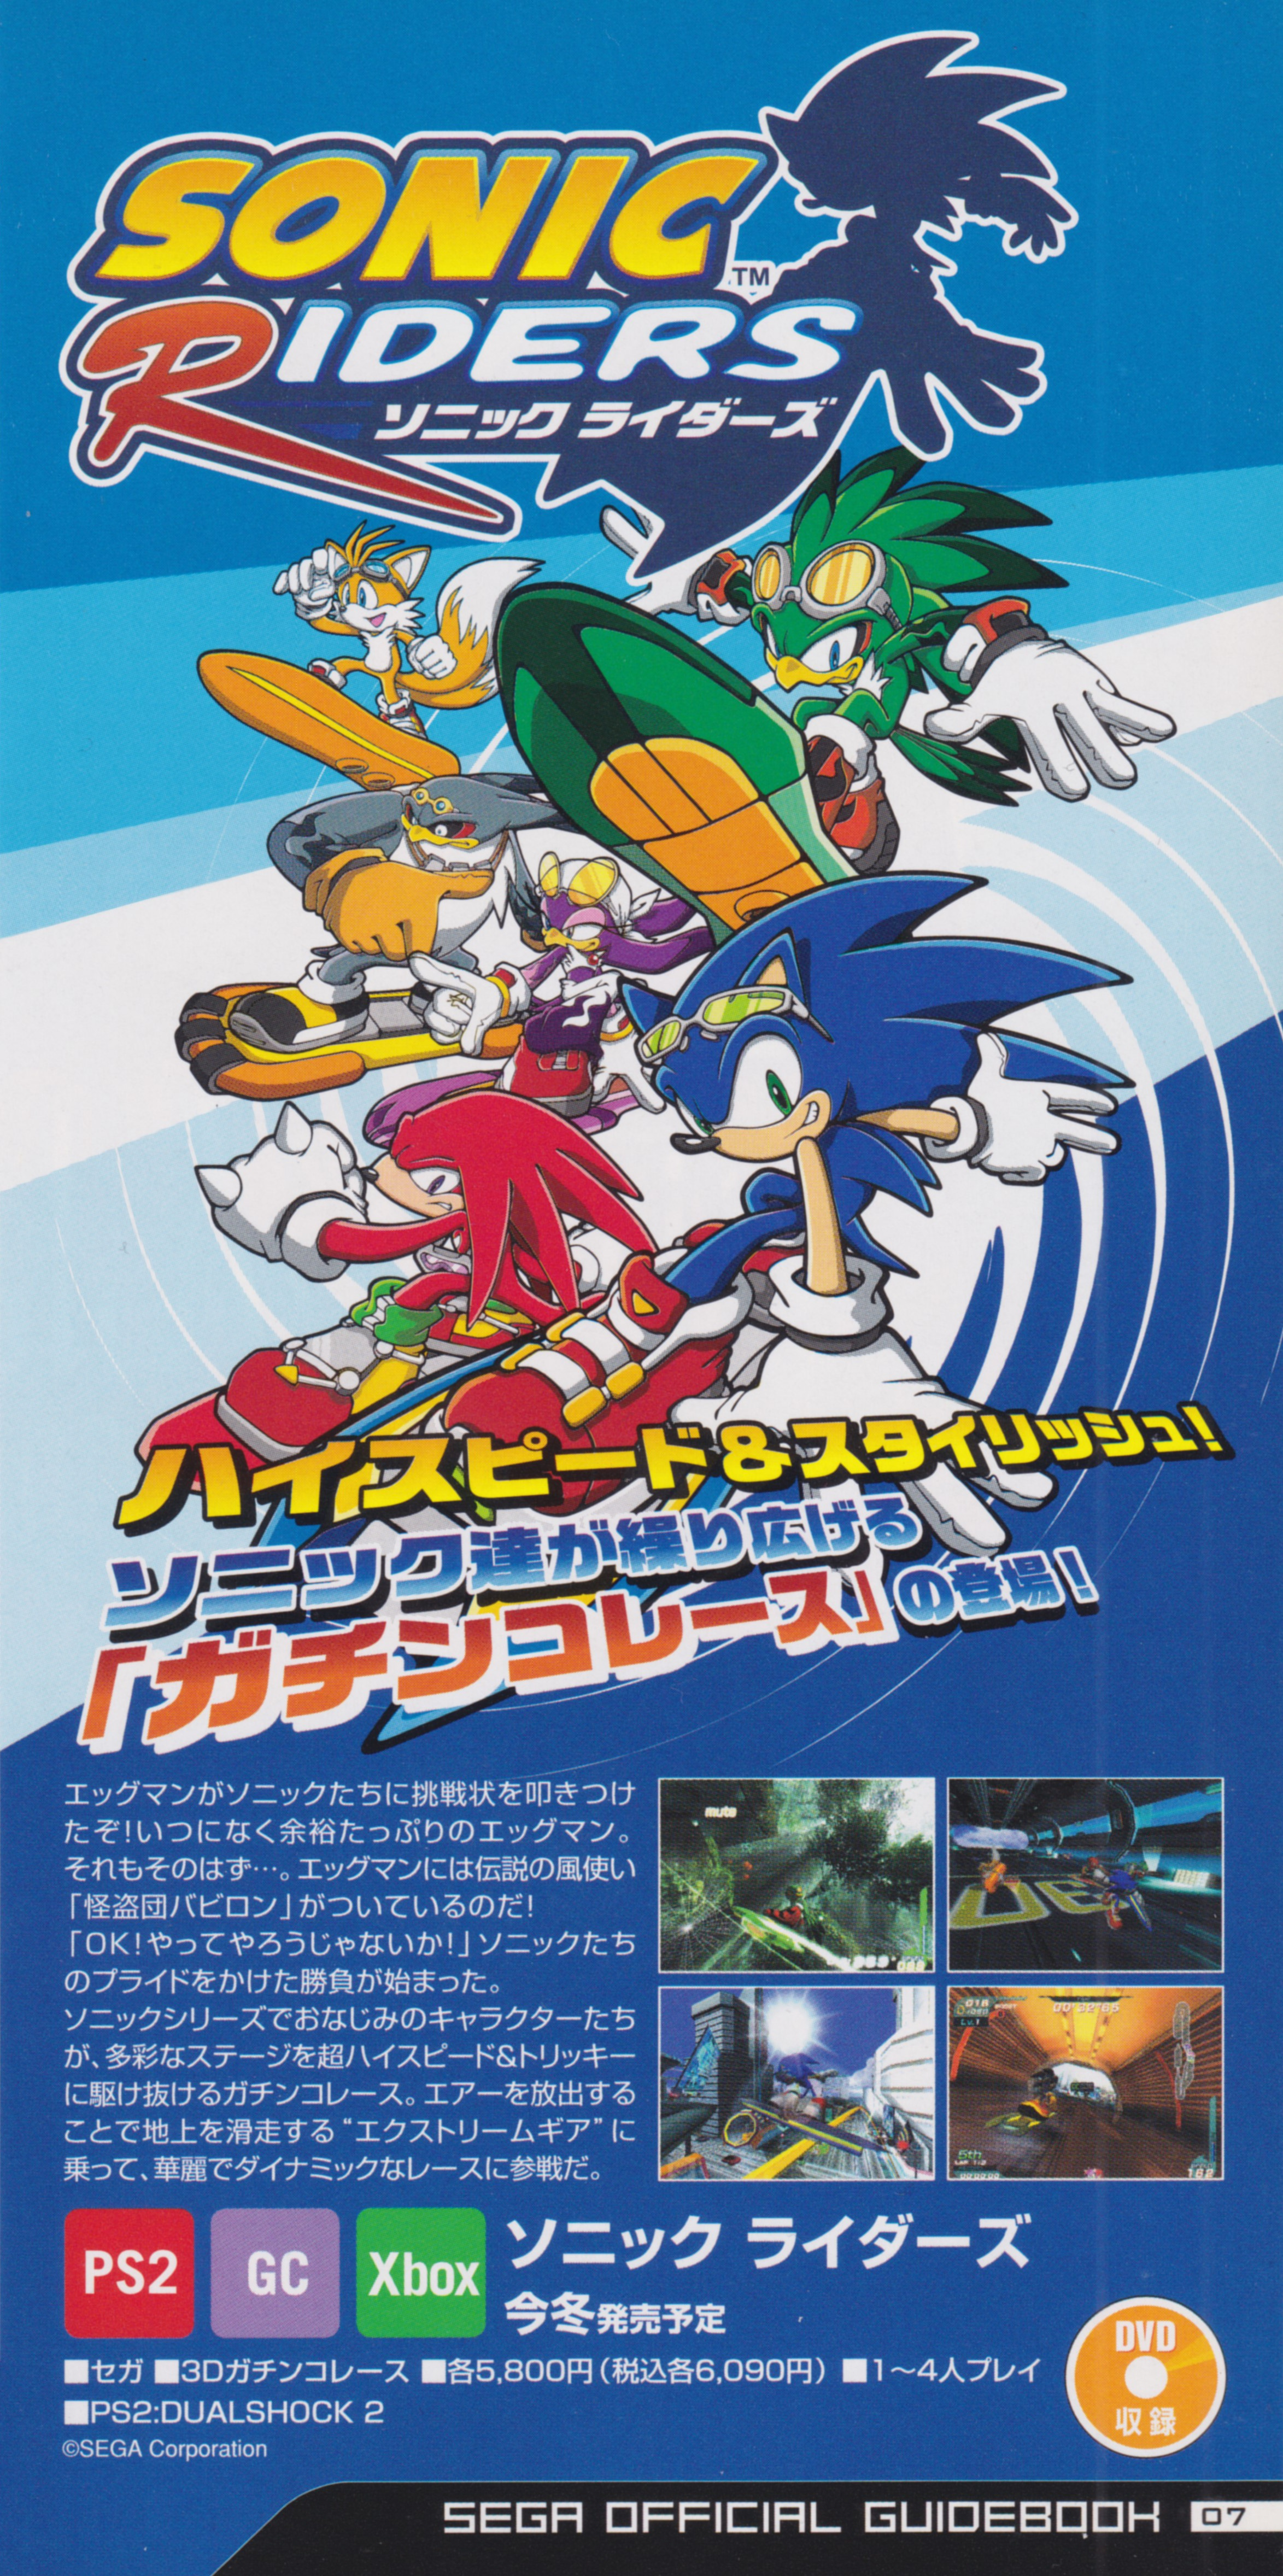 http://vignette1.wikia.nocookie.net/sonic/images/8/8f/JP_Riders_AD.jpg/revision/latest?cb=20130318230759